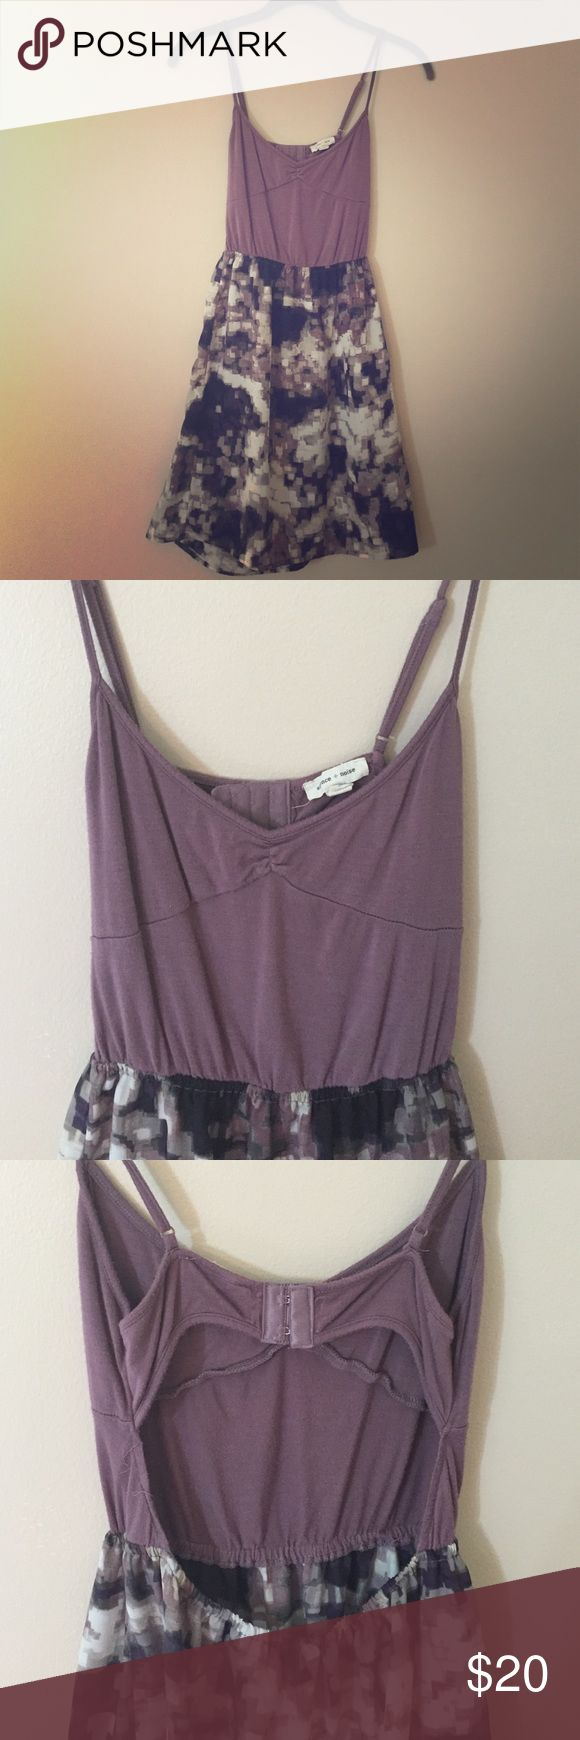 Backless Dress Purple and pattern short dress with open back - silence + noise from UO - super cute and great condition! Urban Outfitters Dresses Backless